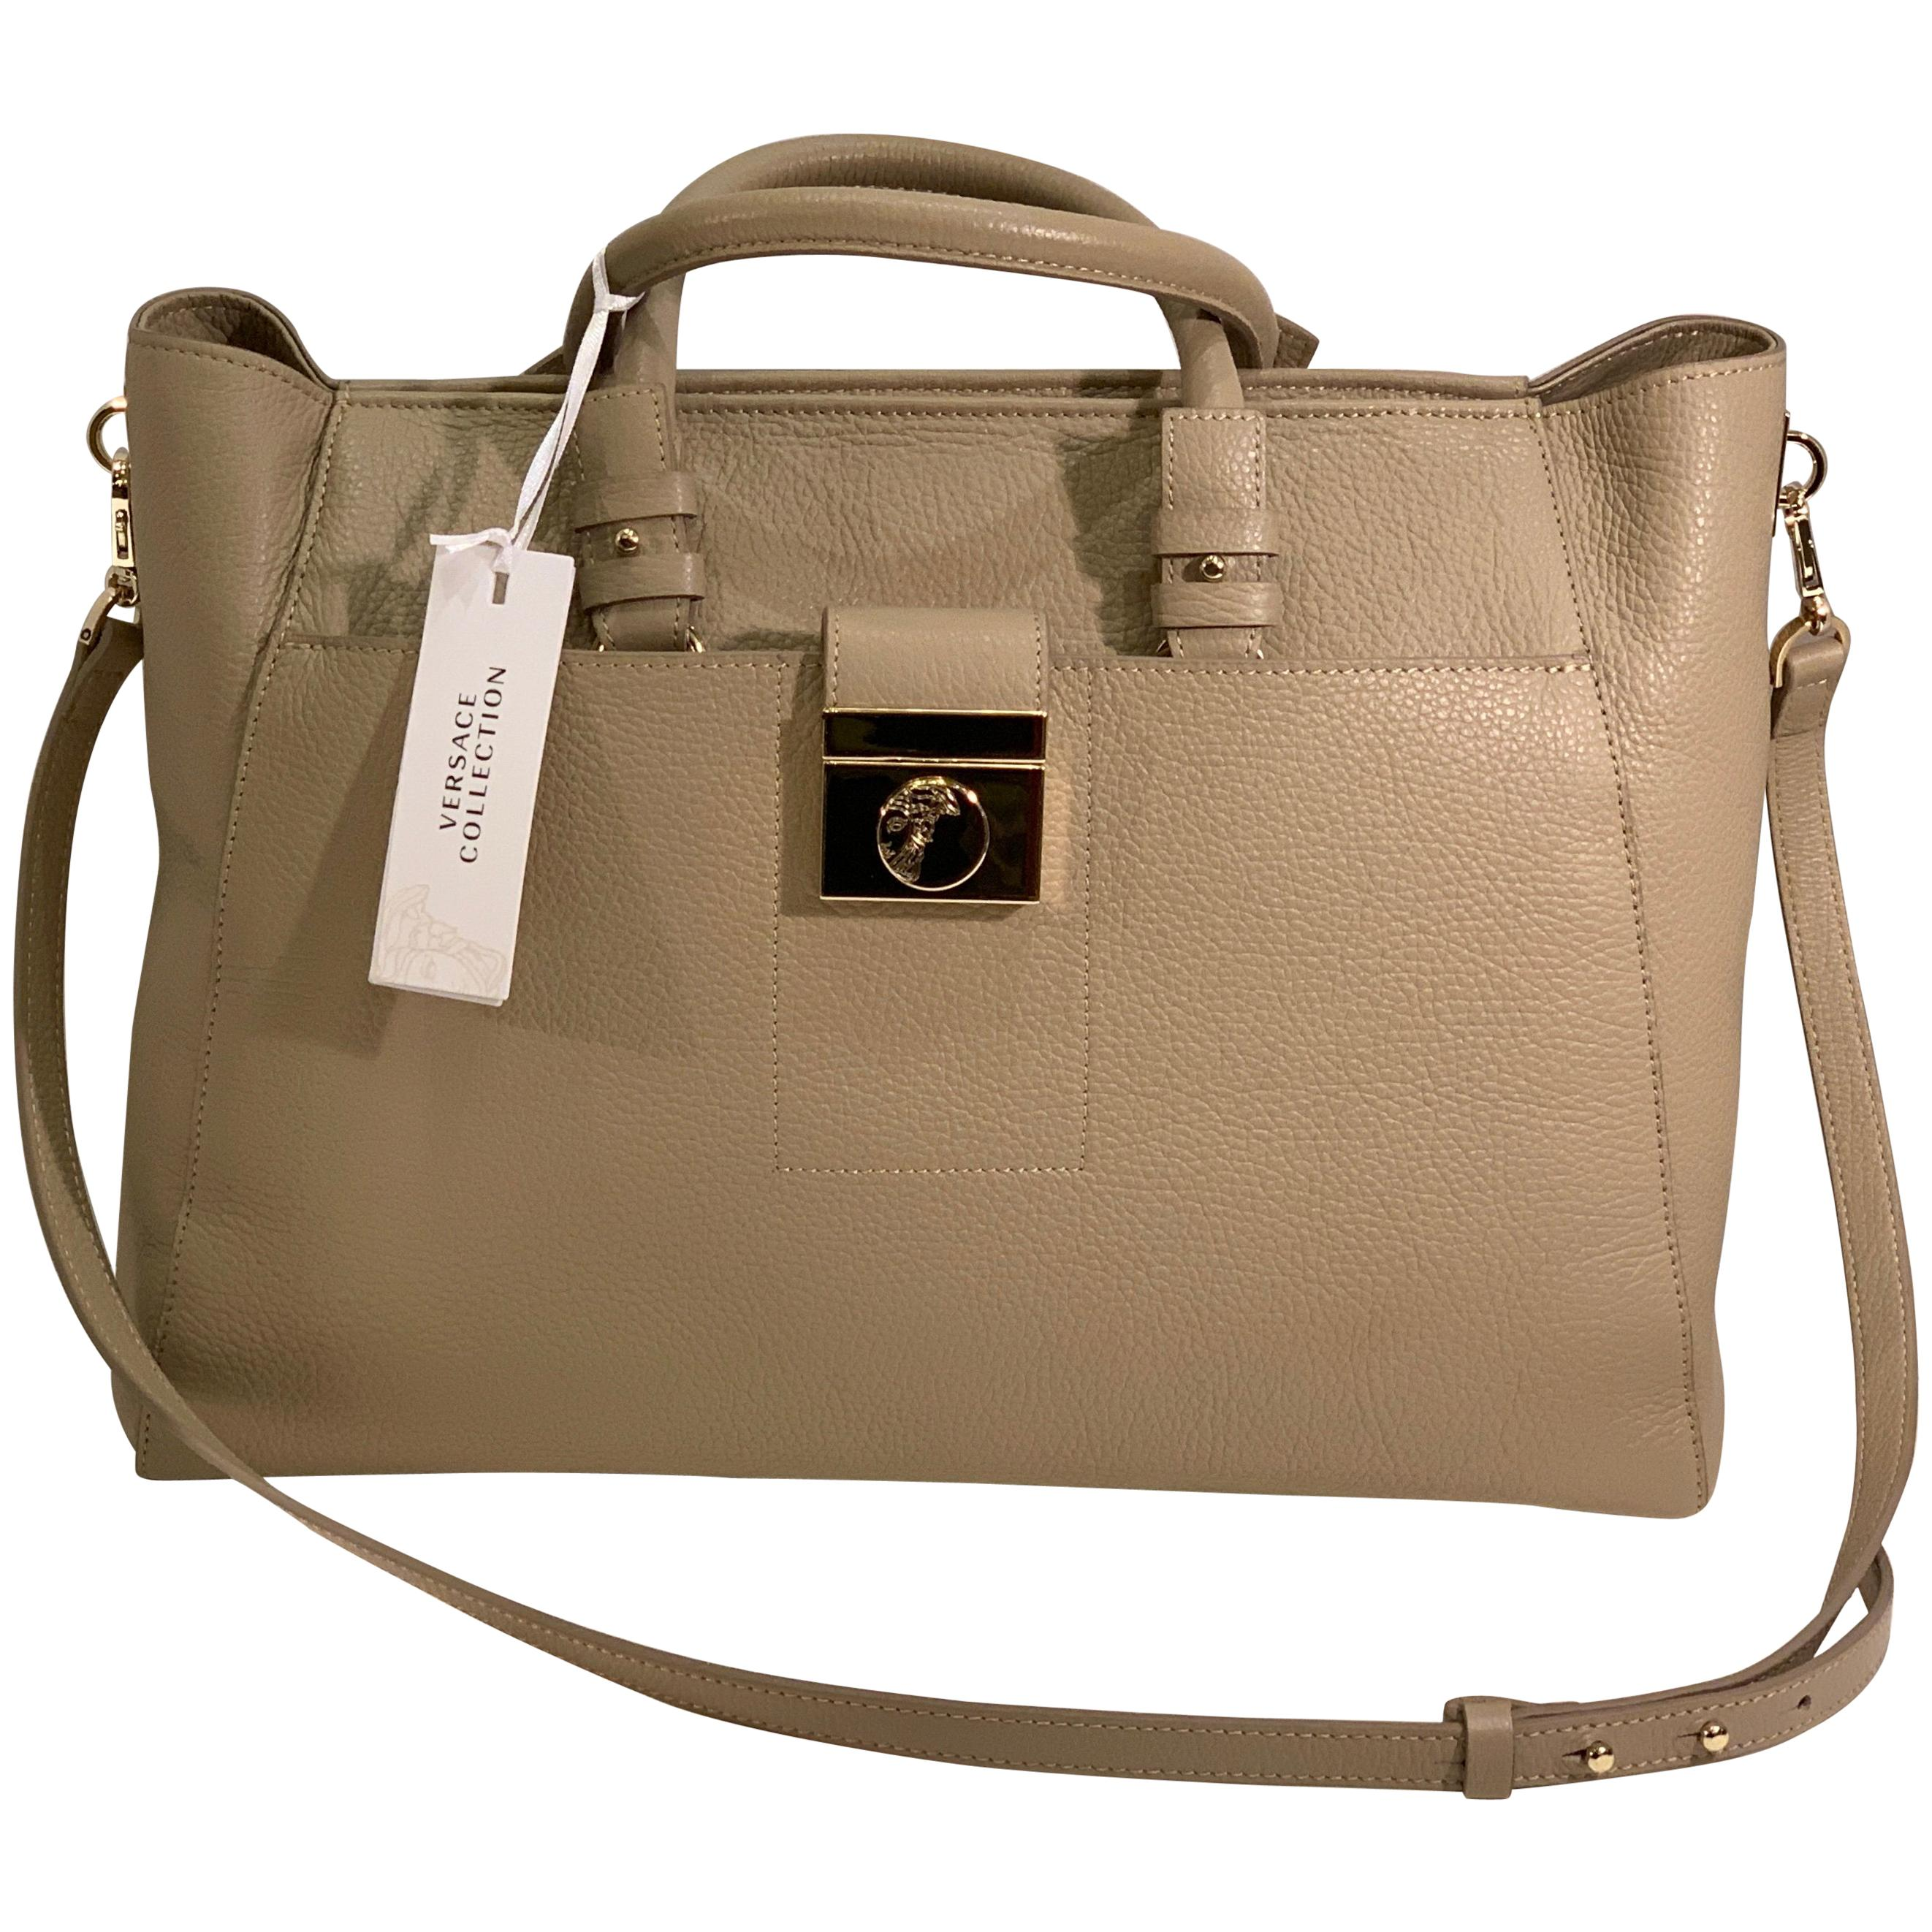 bce19a4a523b Vintage and Designer Bags - 22,723 For Sale at 1stdibs